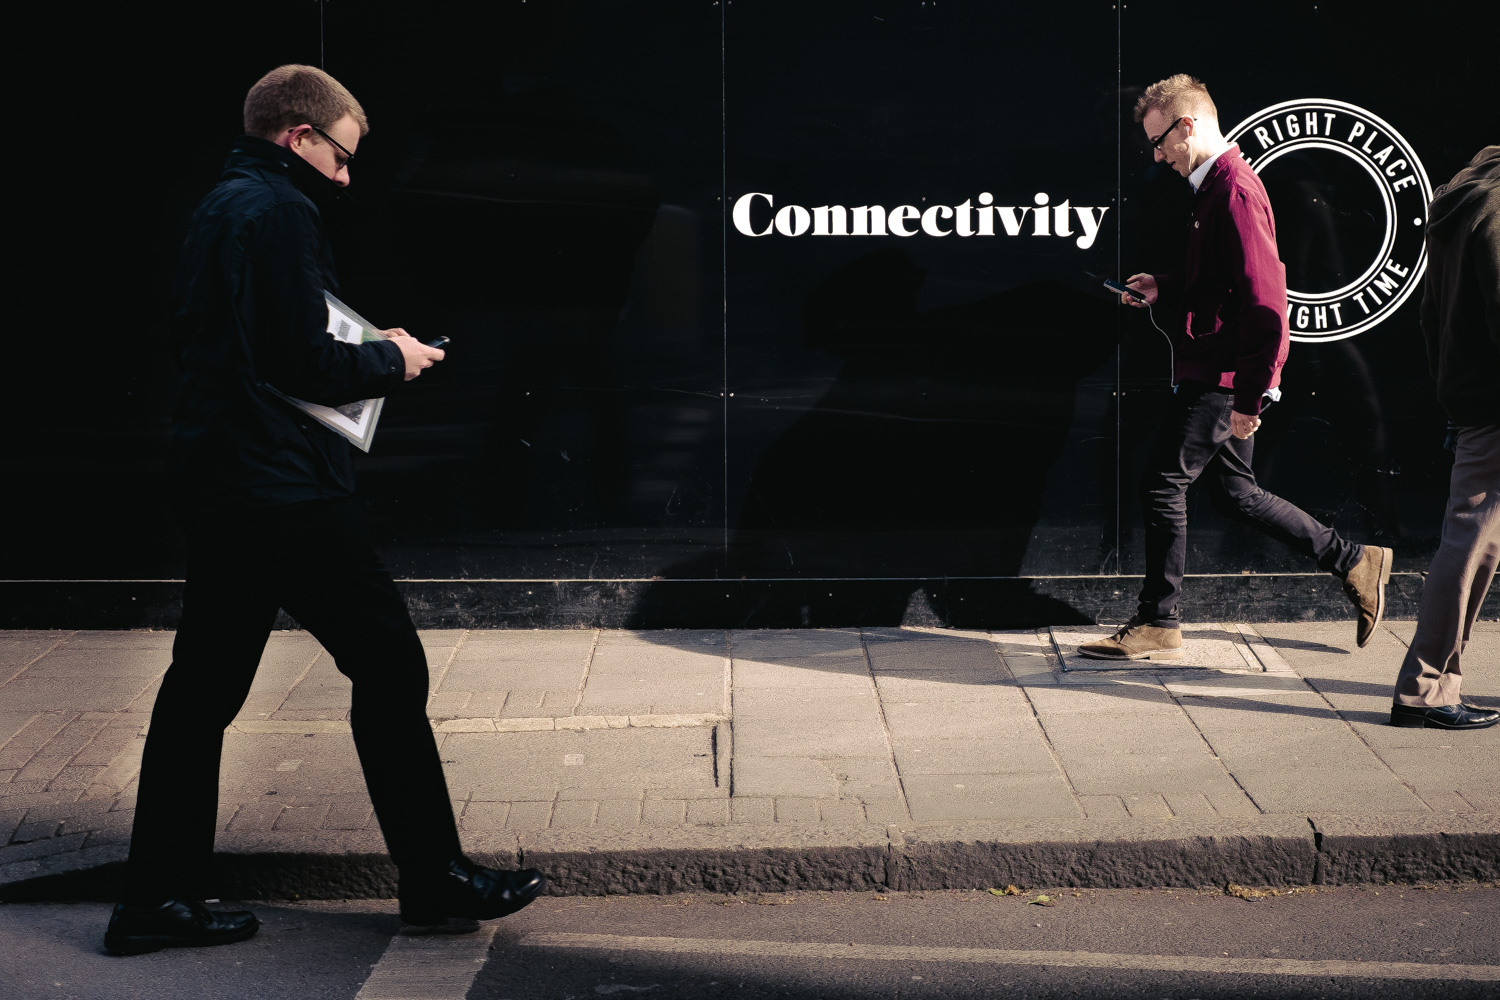 Two men walk in the city paying attention to their mobile phones. On the hording behind them the word 'Connectivity'.